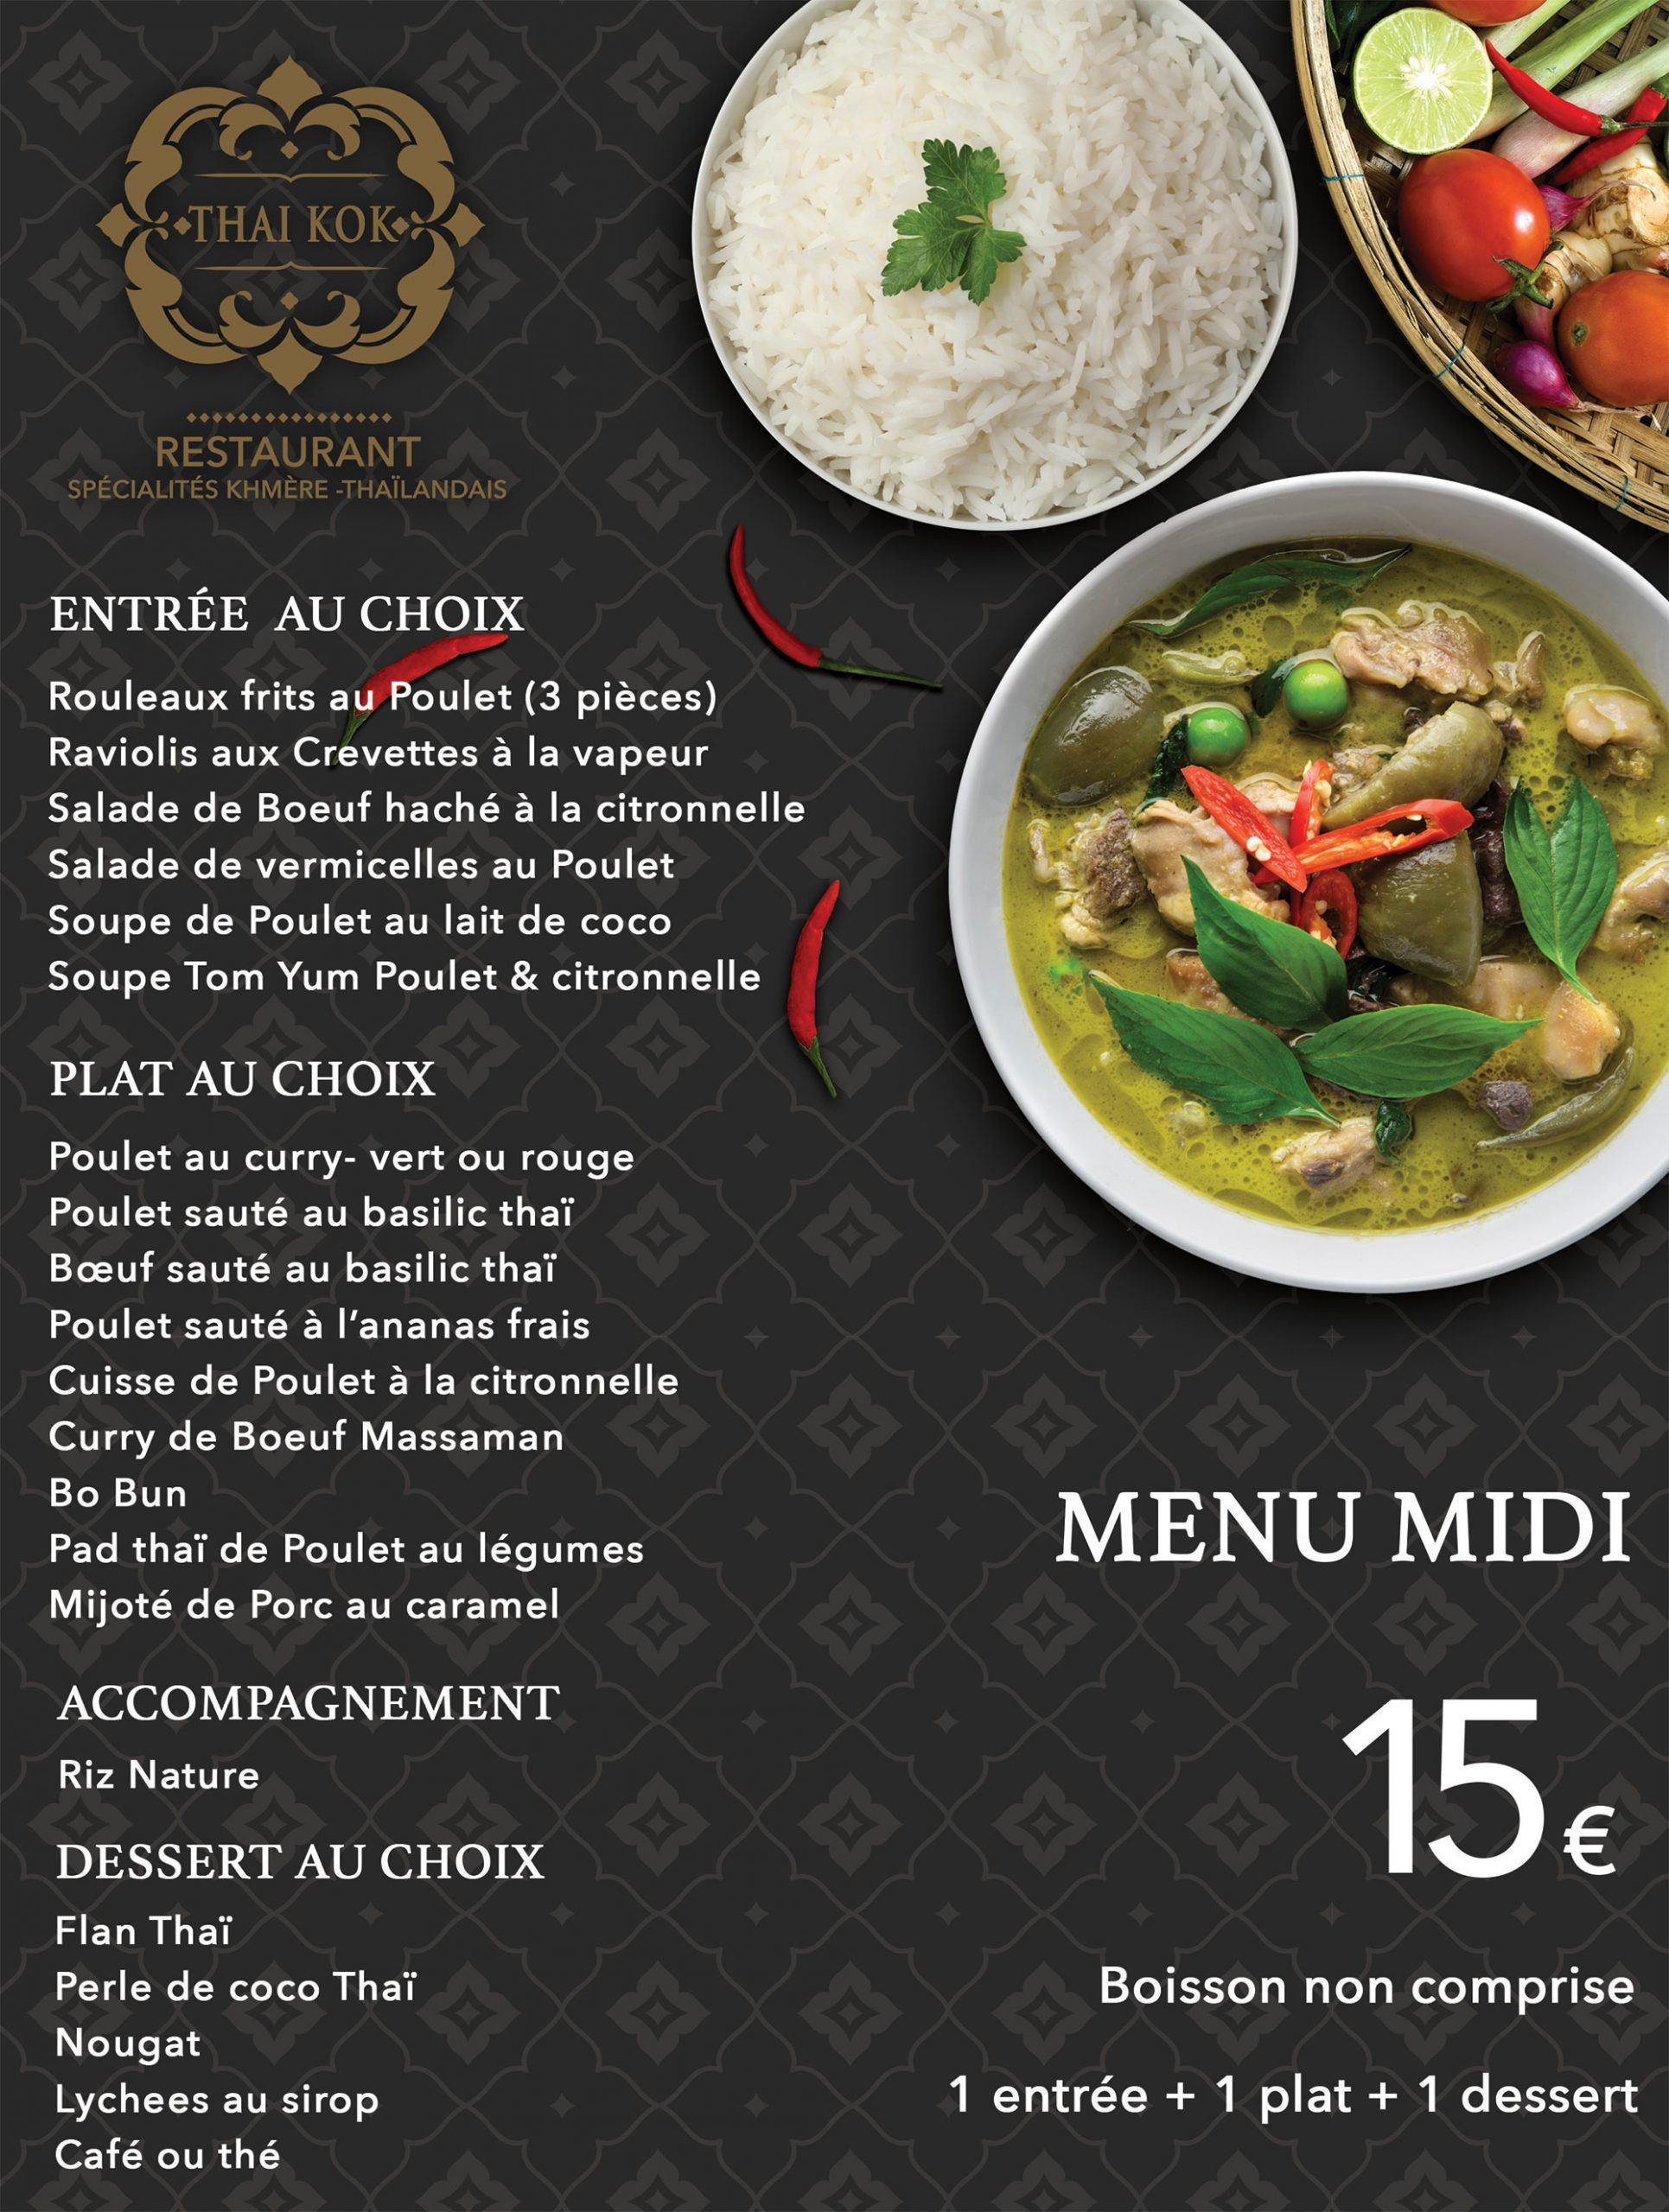 Thai-kok-menu-midi-15-final